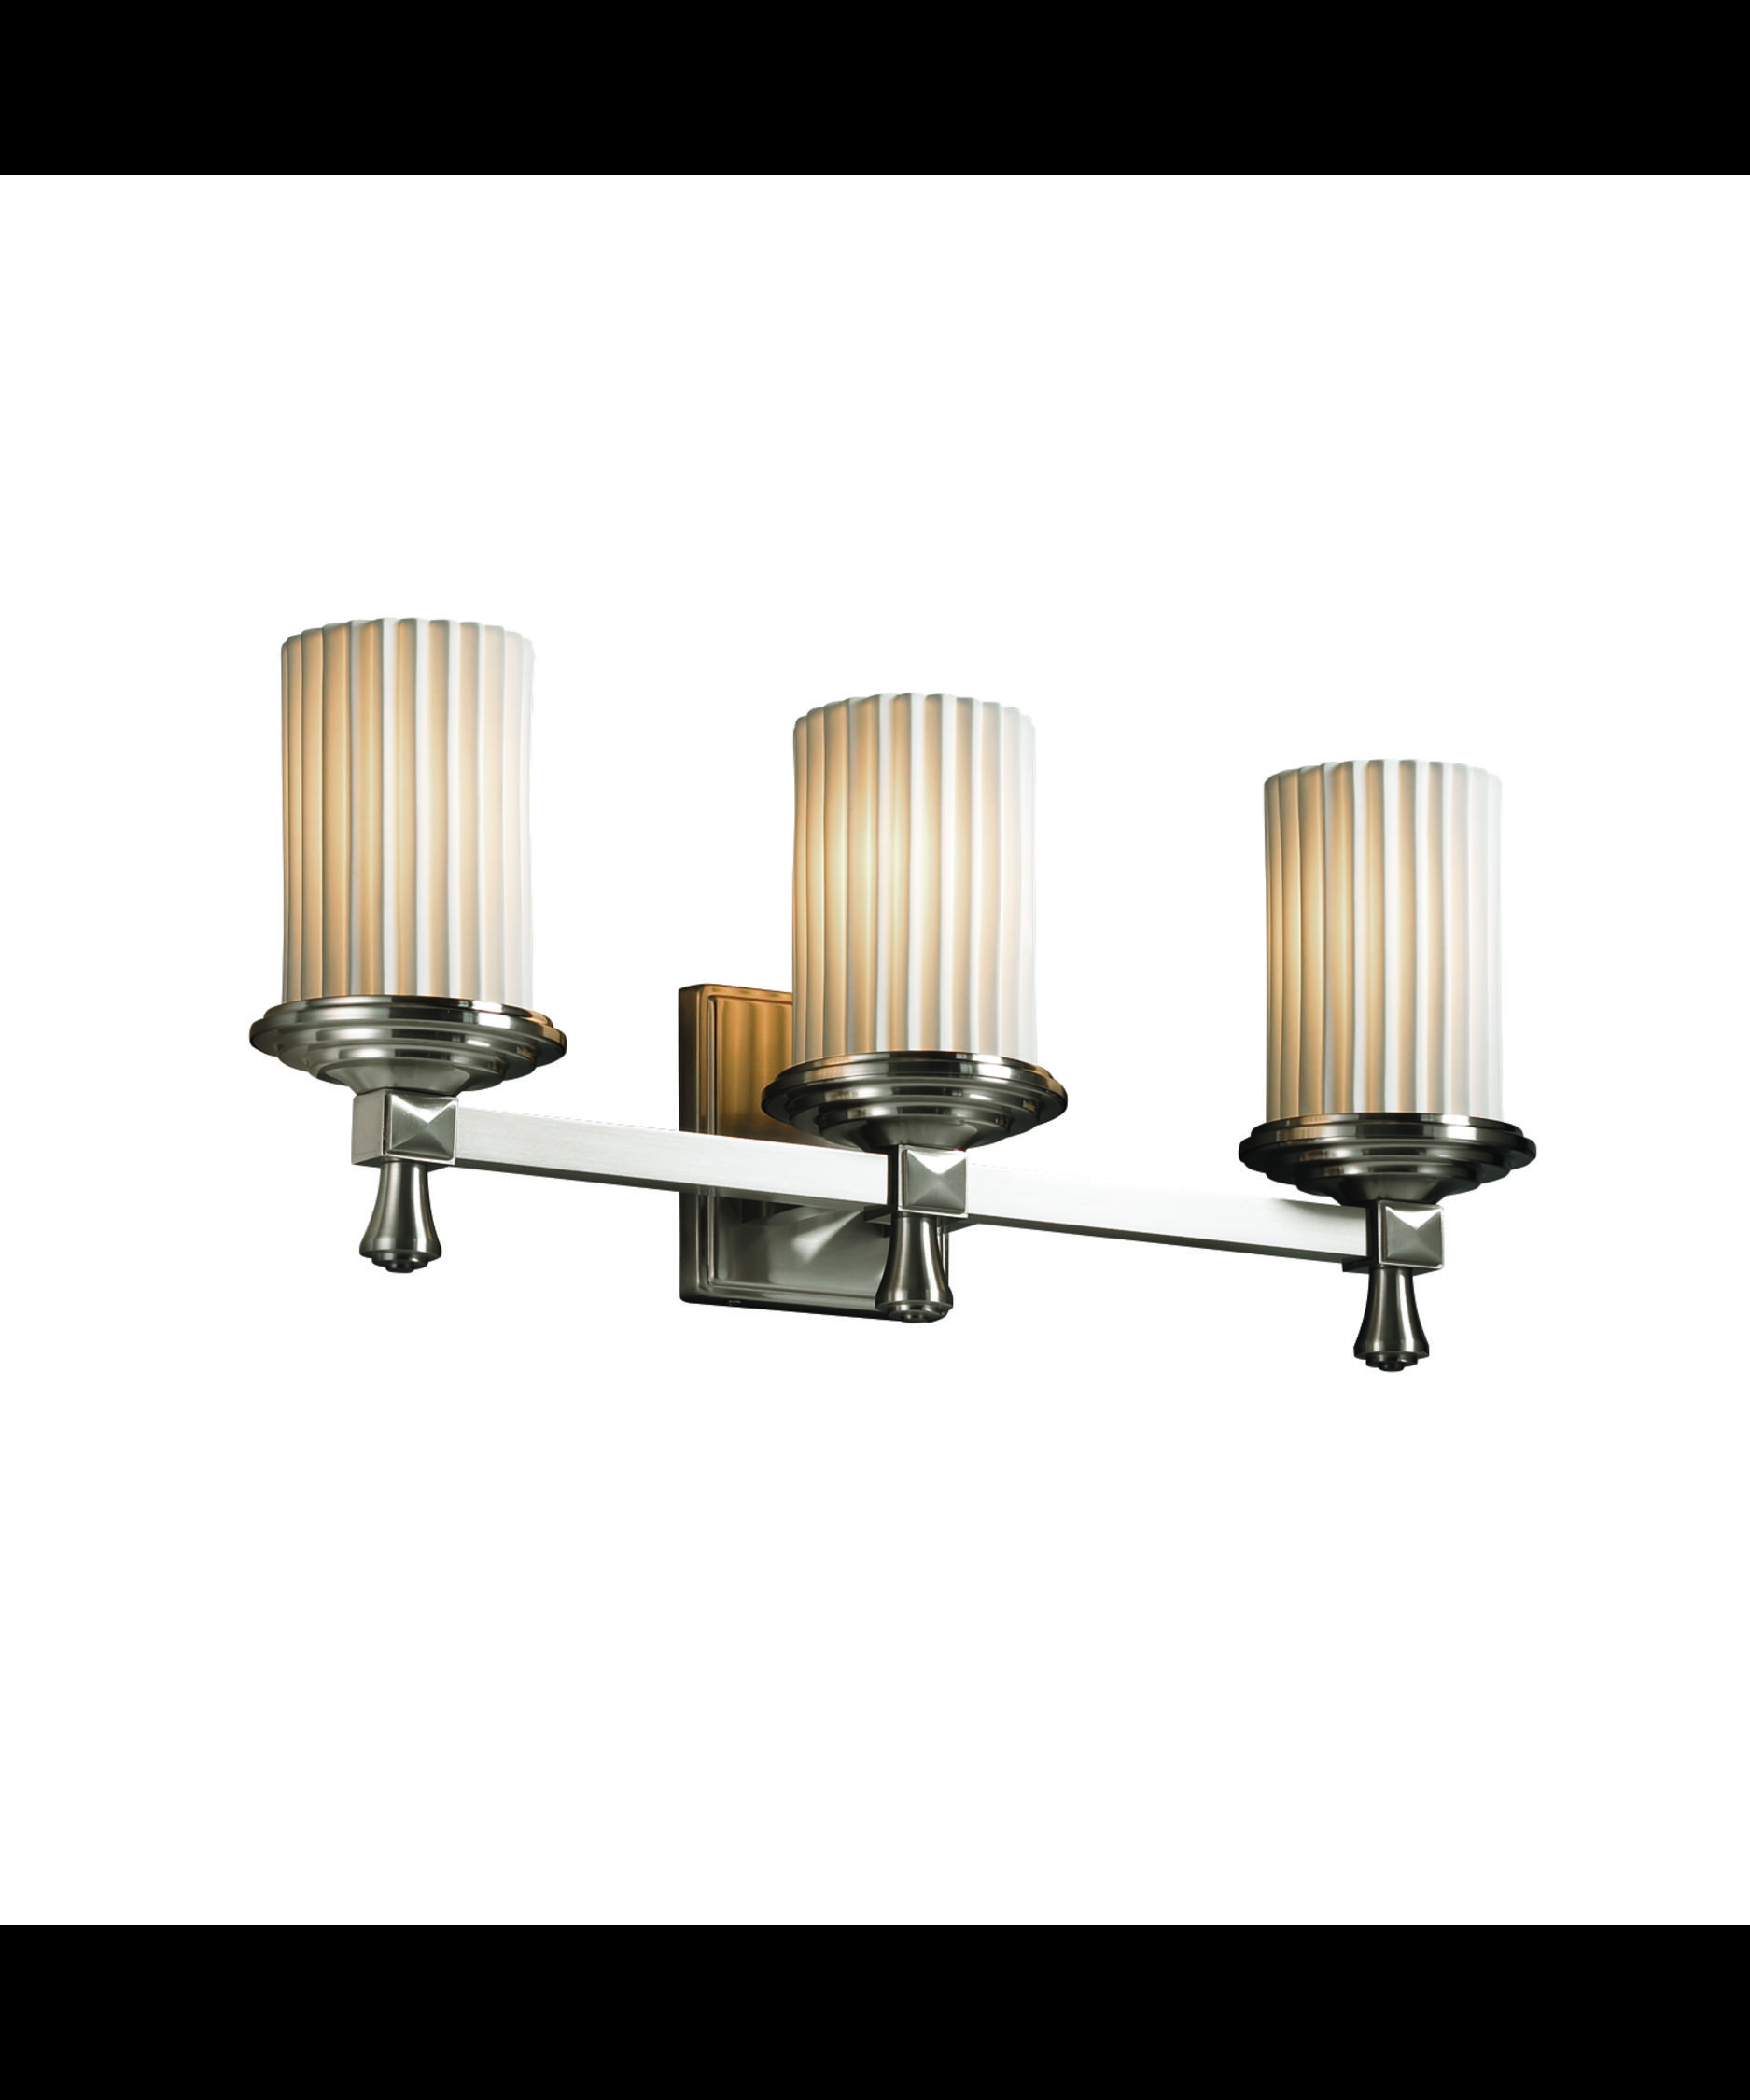 Justice Design Group Limoges Deco 21 Inch Bath Vanity Light Capitol Lighting 1